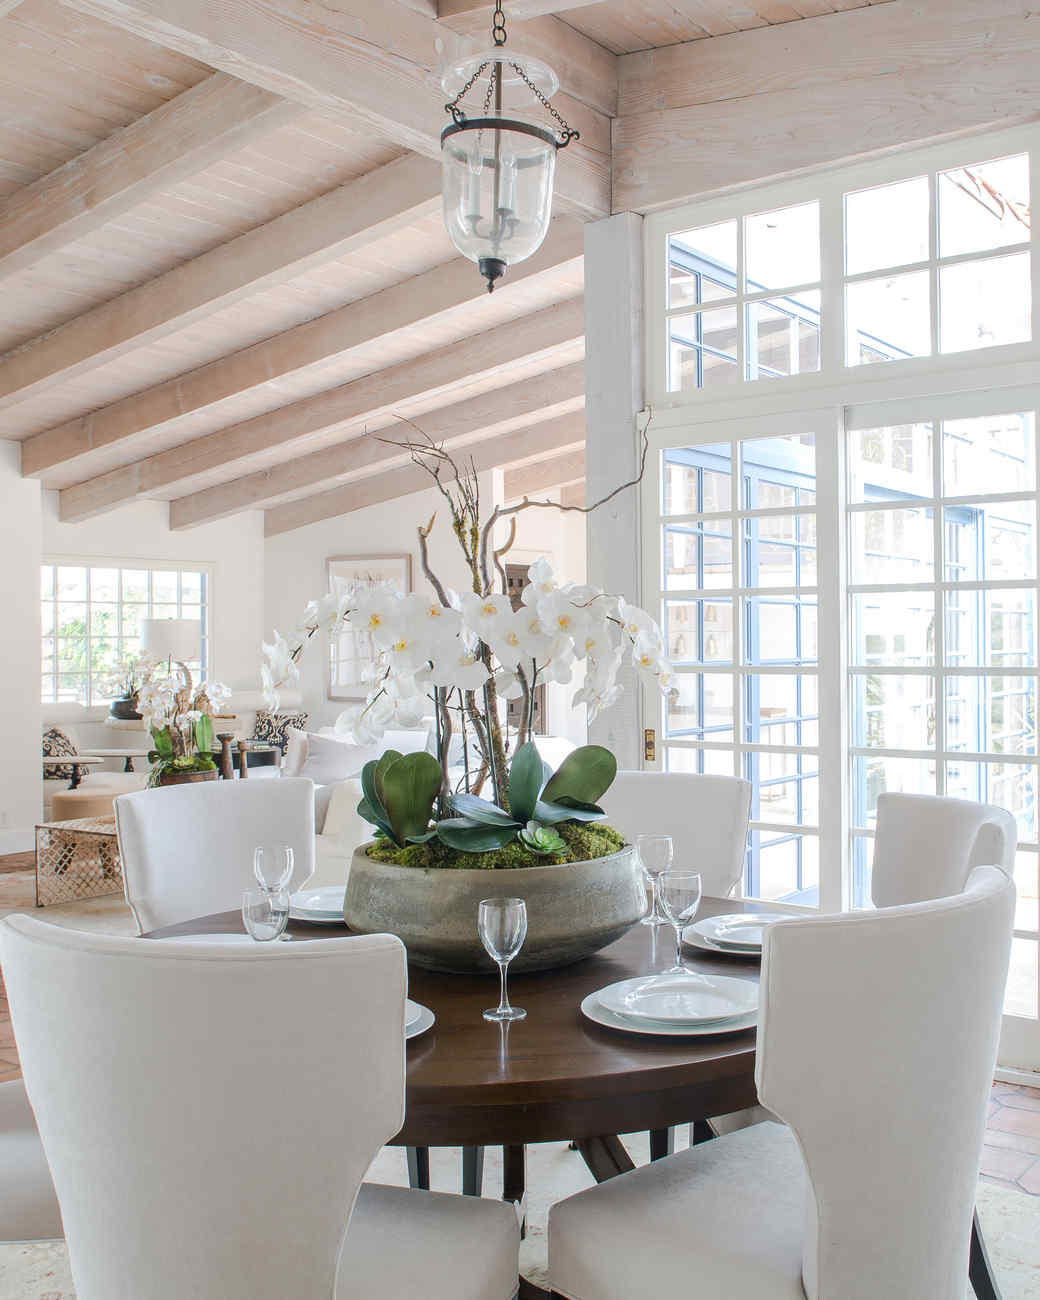 Pictures For Dining Room: Feast Your Eyes: Gorgeous Dining Room Decorating Ideas